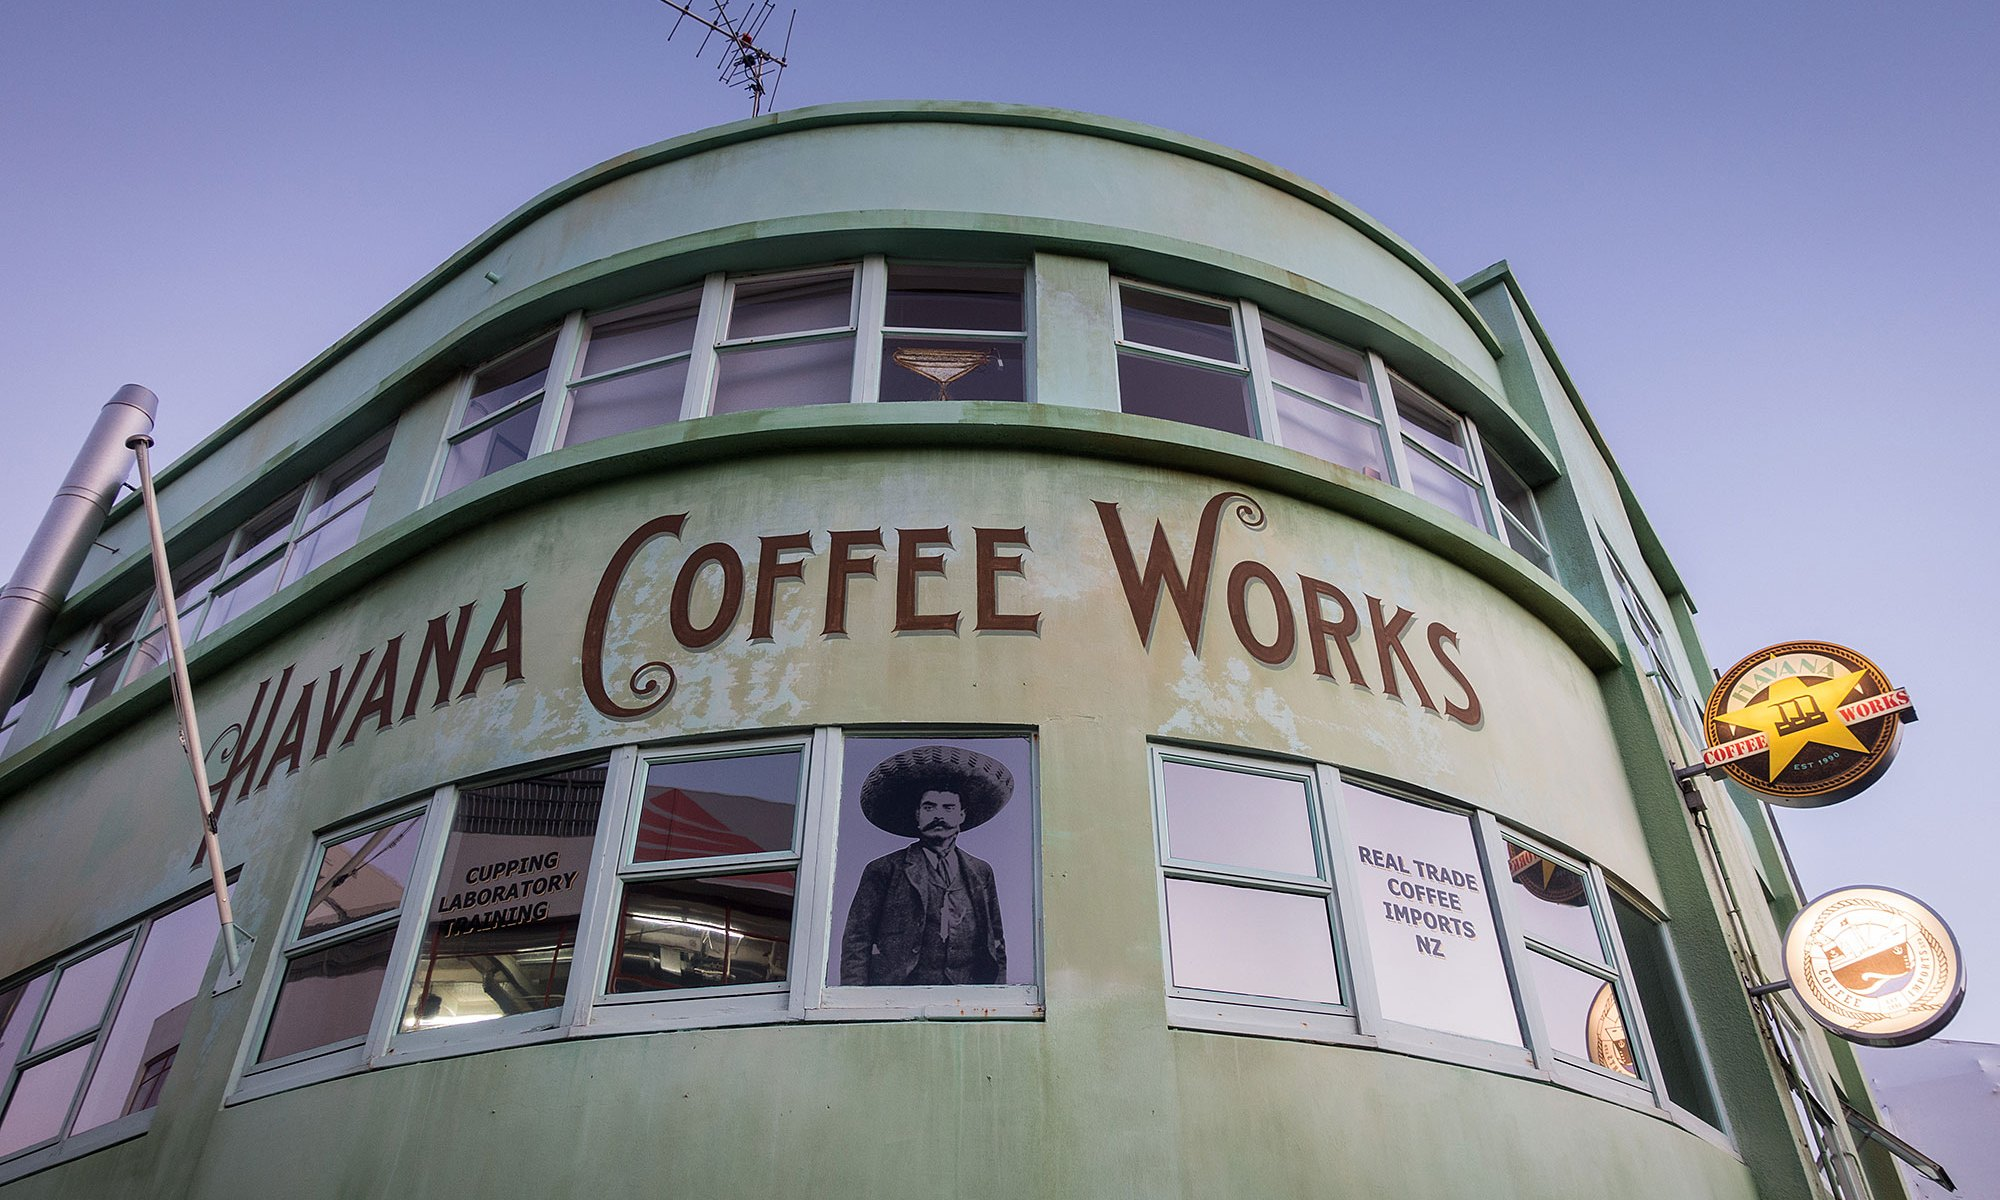 Havana Coffee Works Wellington